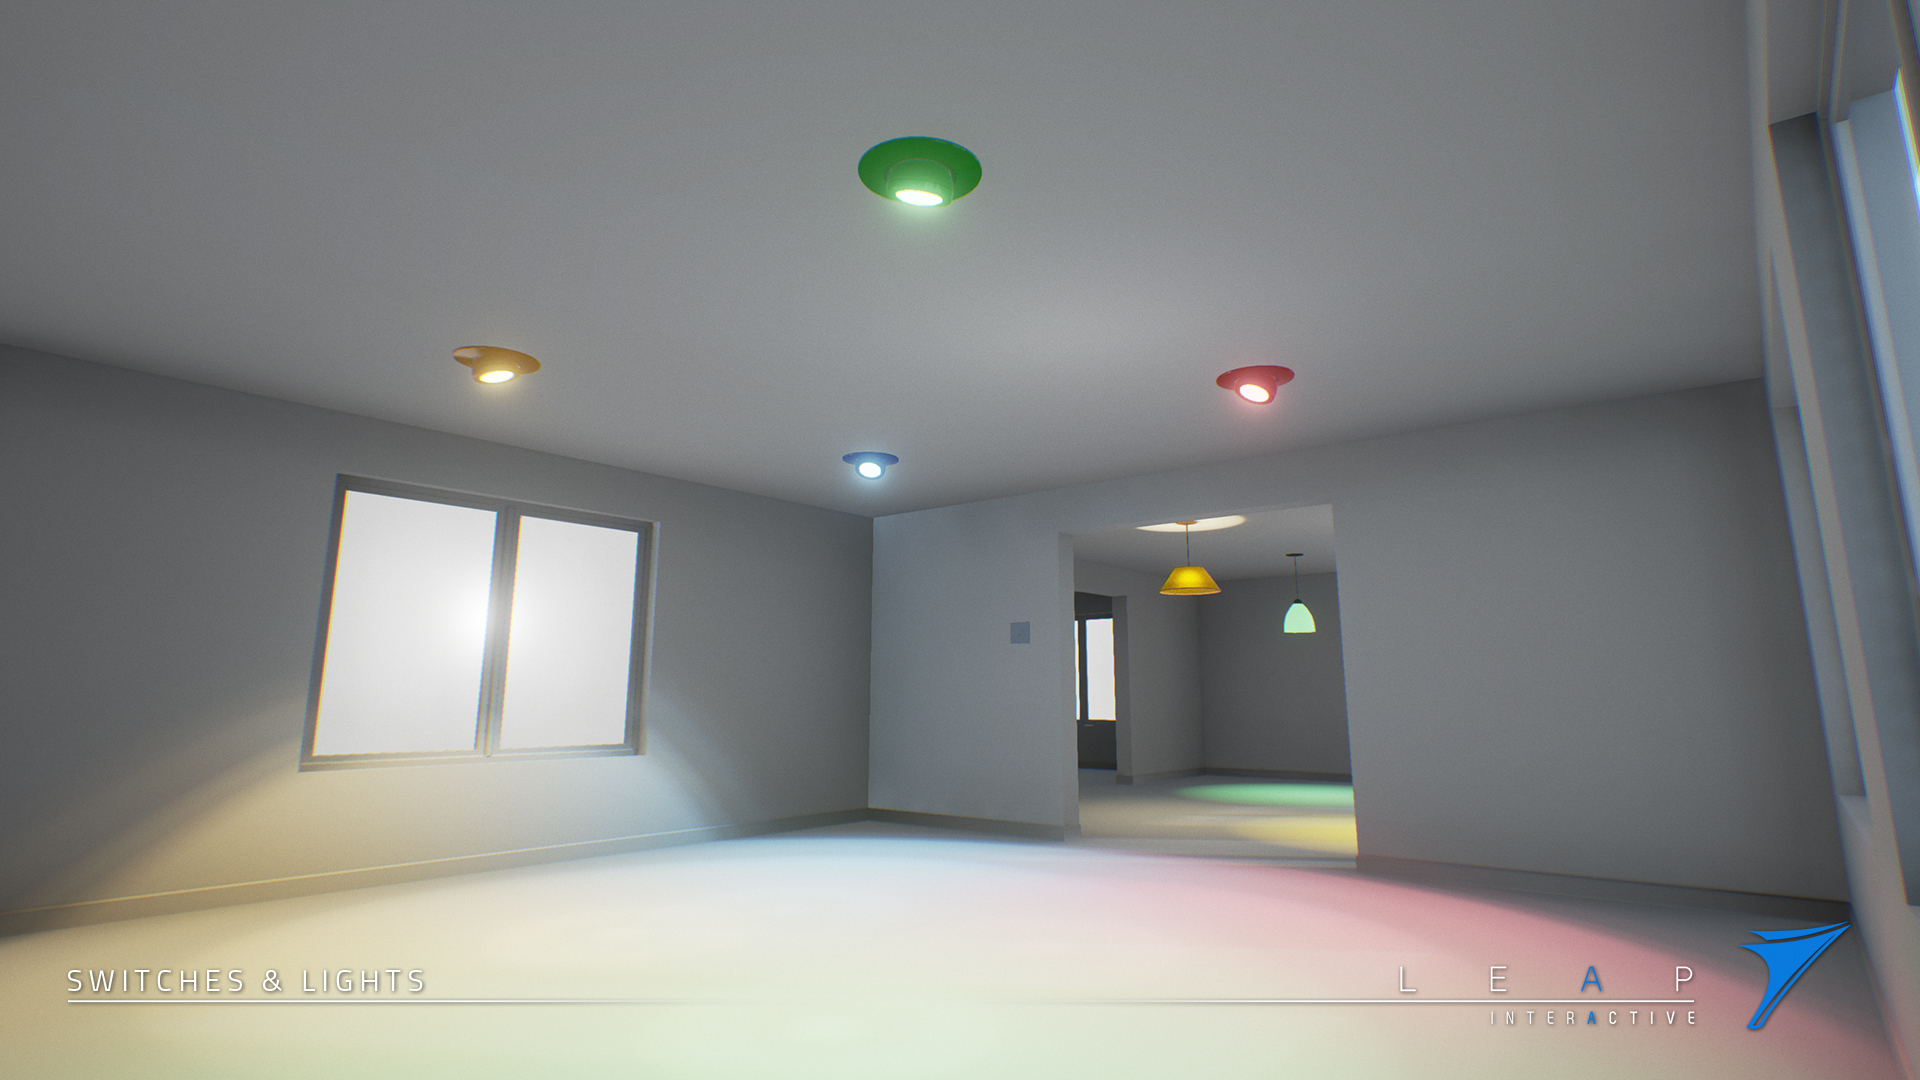 Switches And Lights Pack by Leap Interactive Ltd in FX - UE4 Marketplace